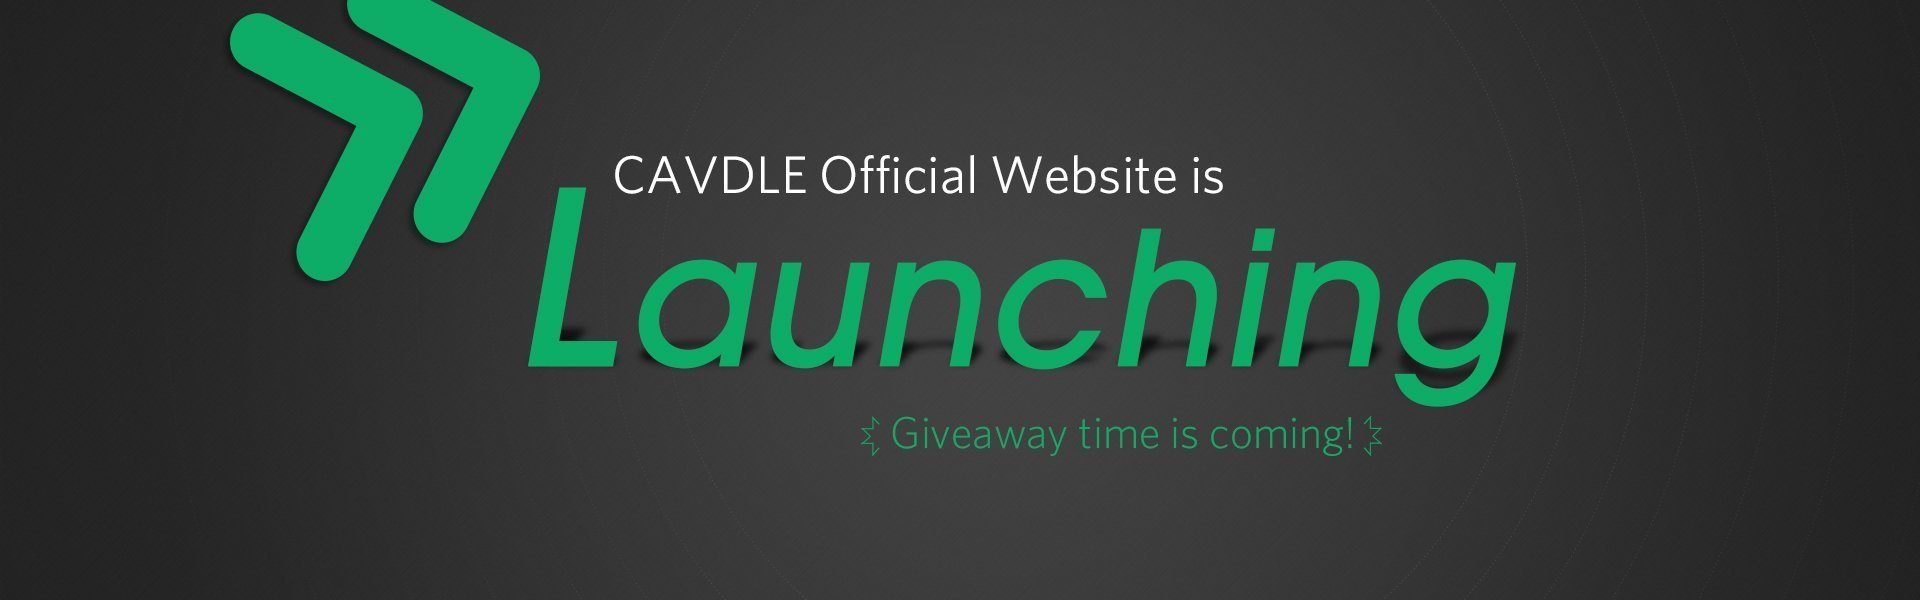 website launching giveaway